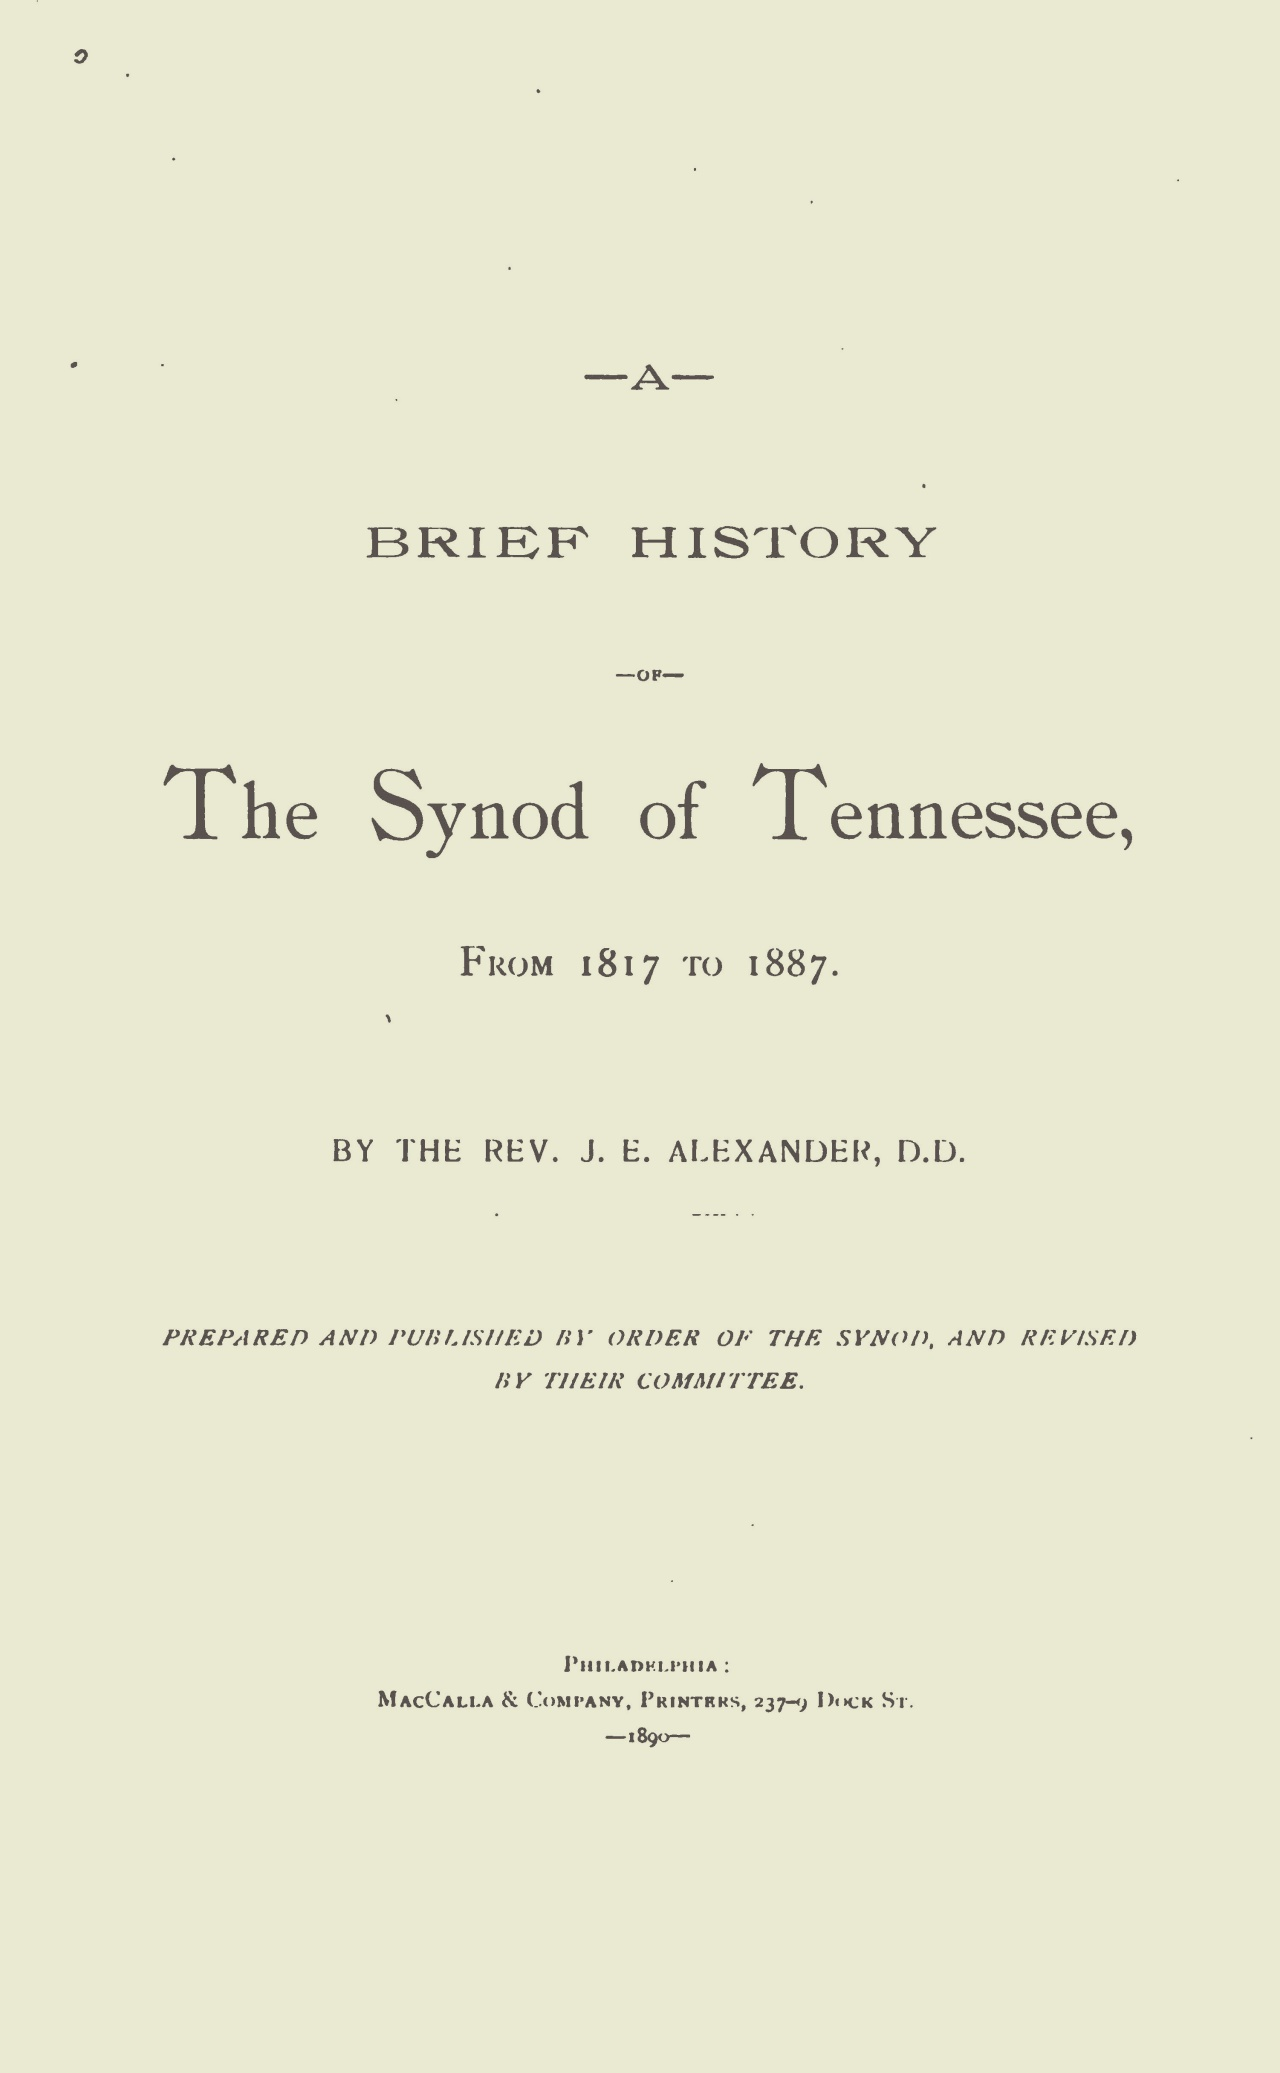 Alexander, John Edmiston, A Brief History of the Synod of Tennessee Title Page.jpg